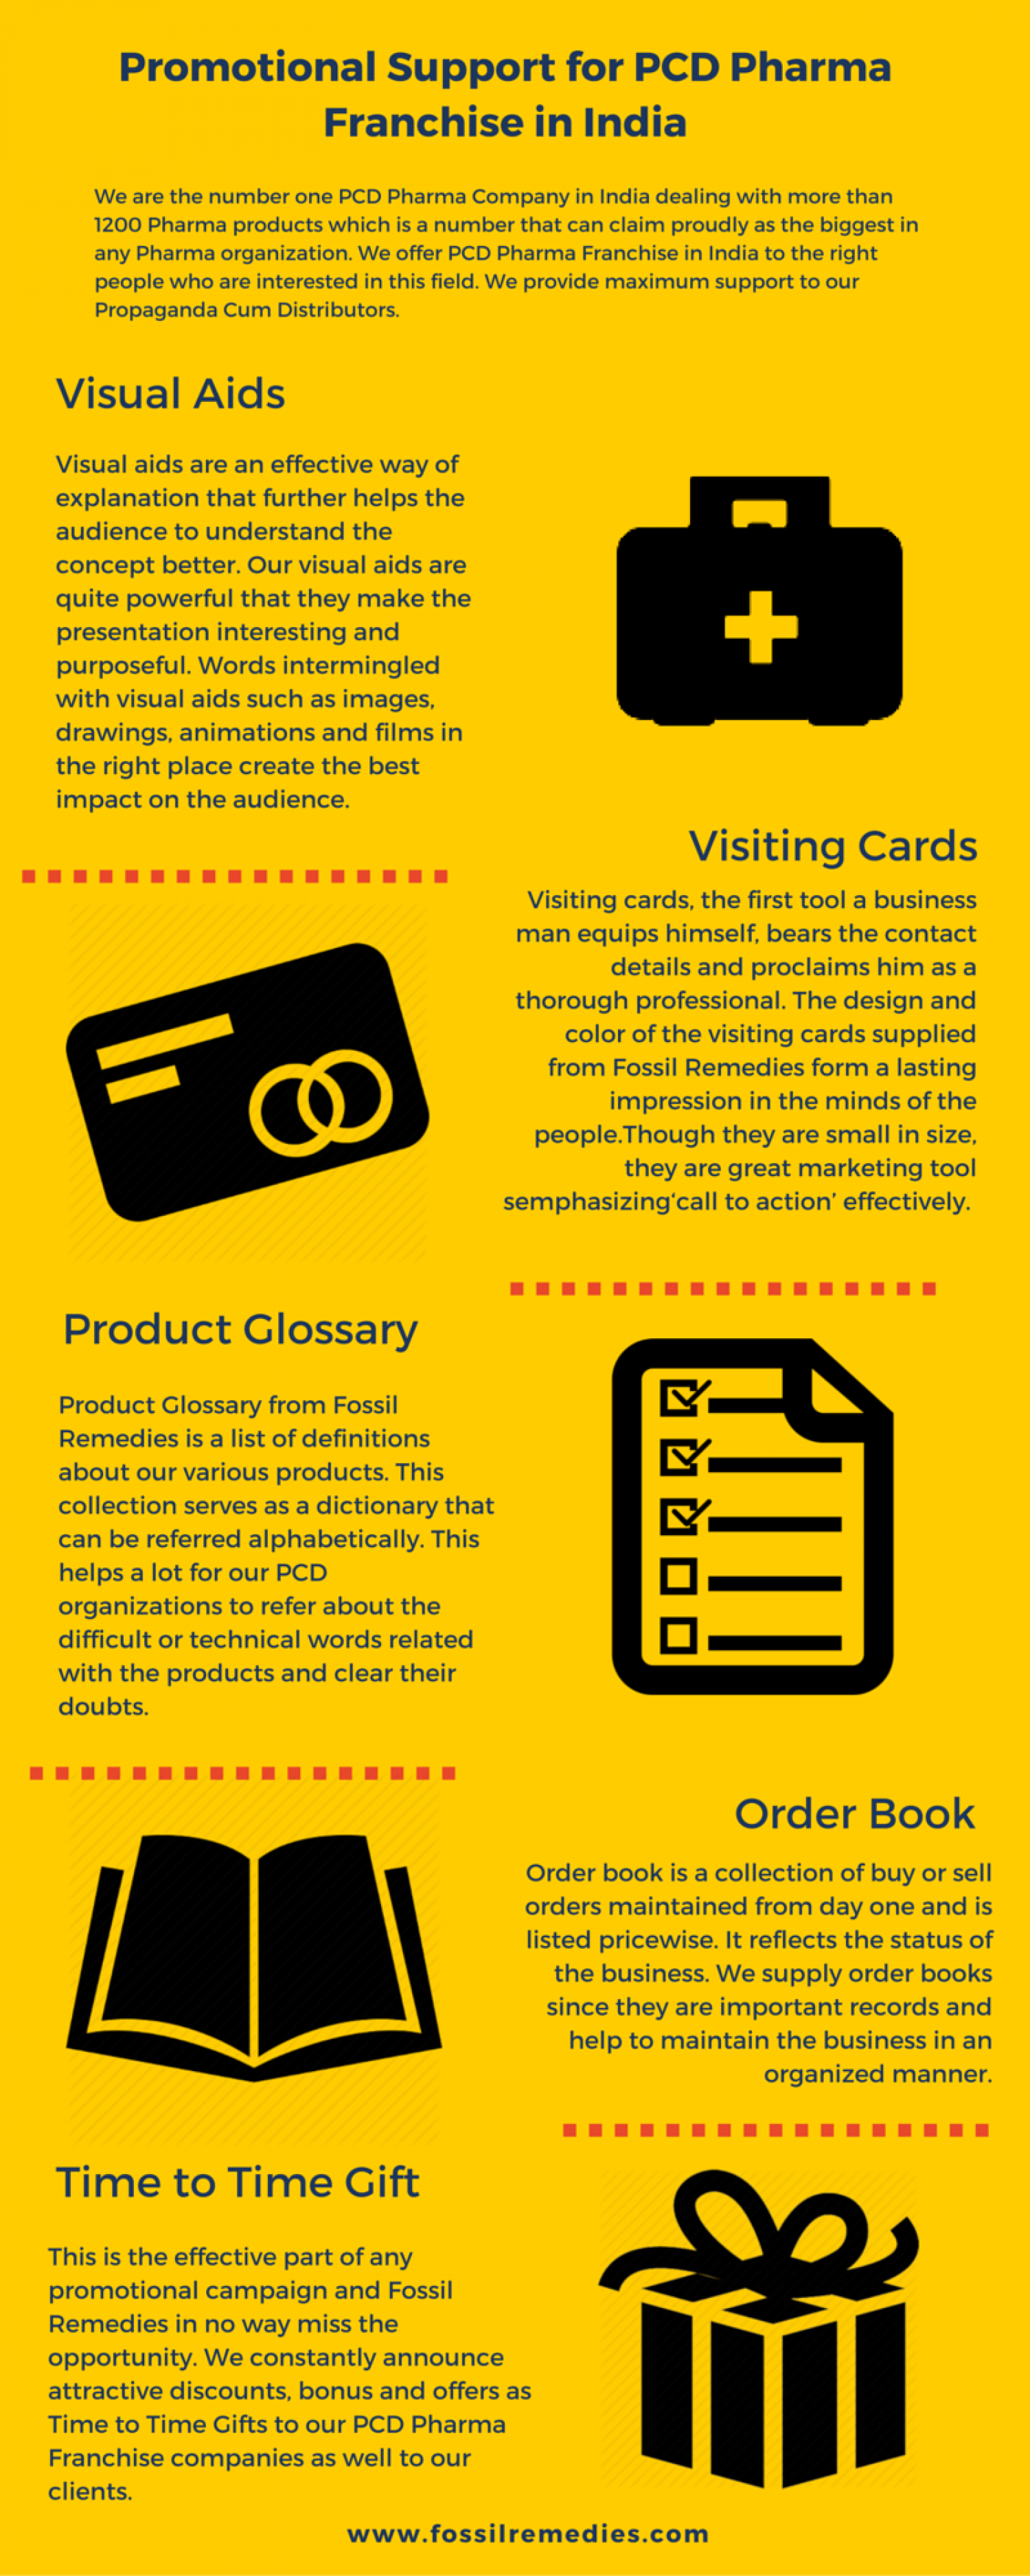 Promotional Support for PCD Pharma Franchise in India Infographic